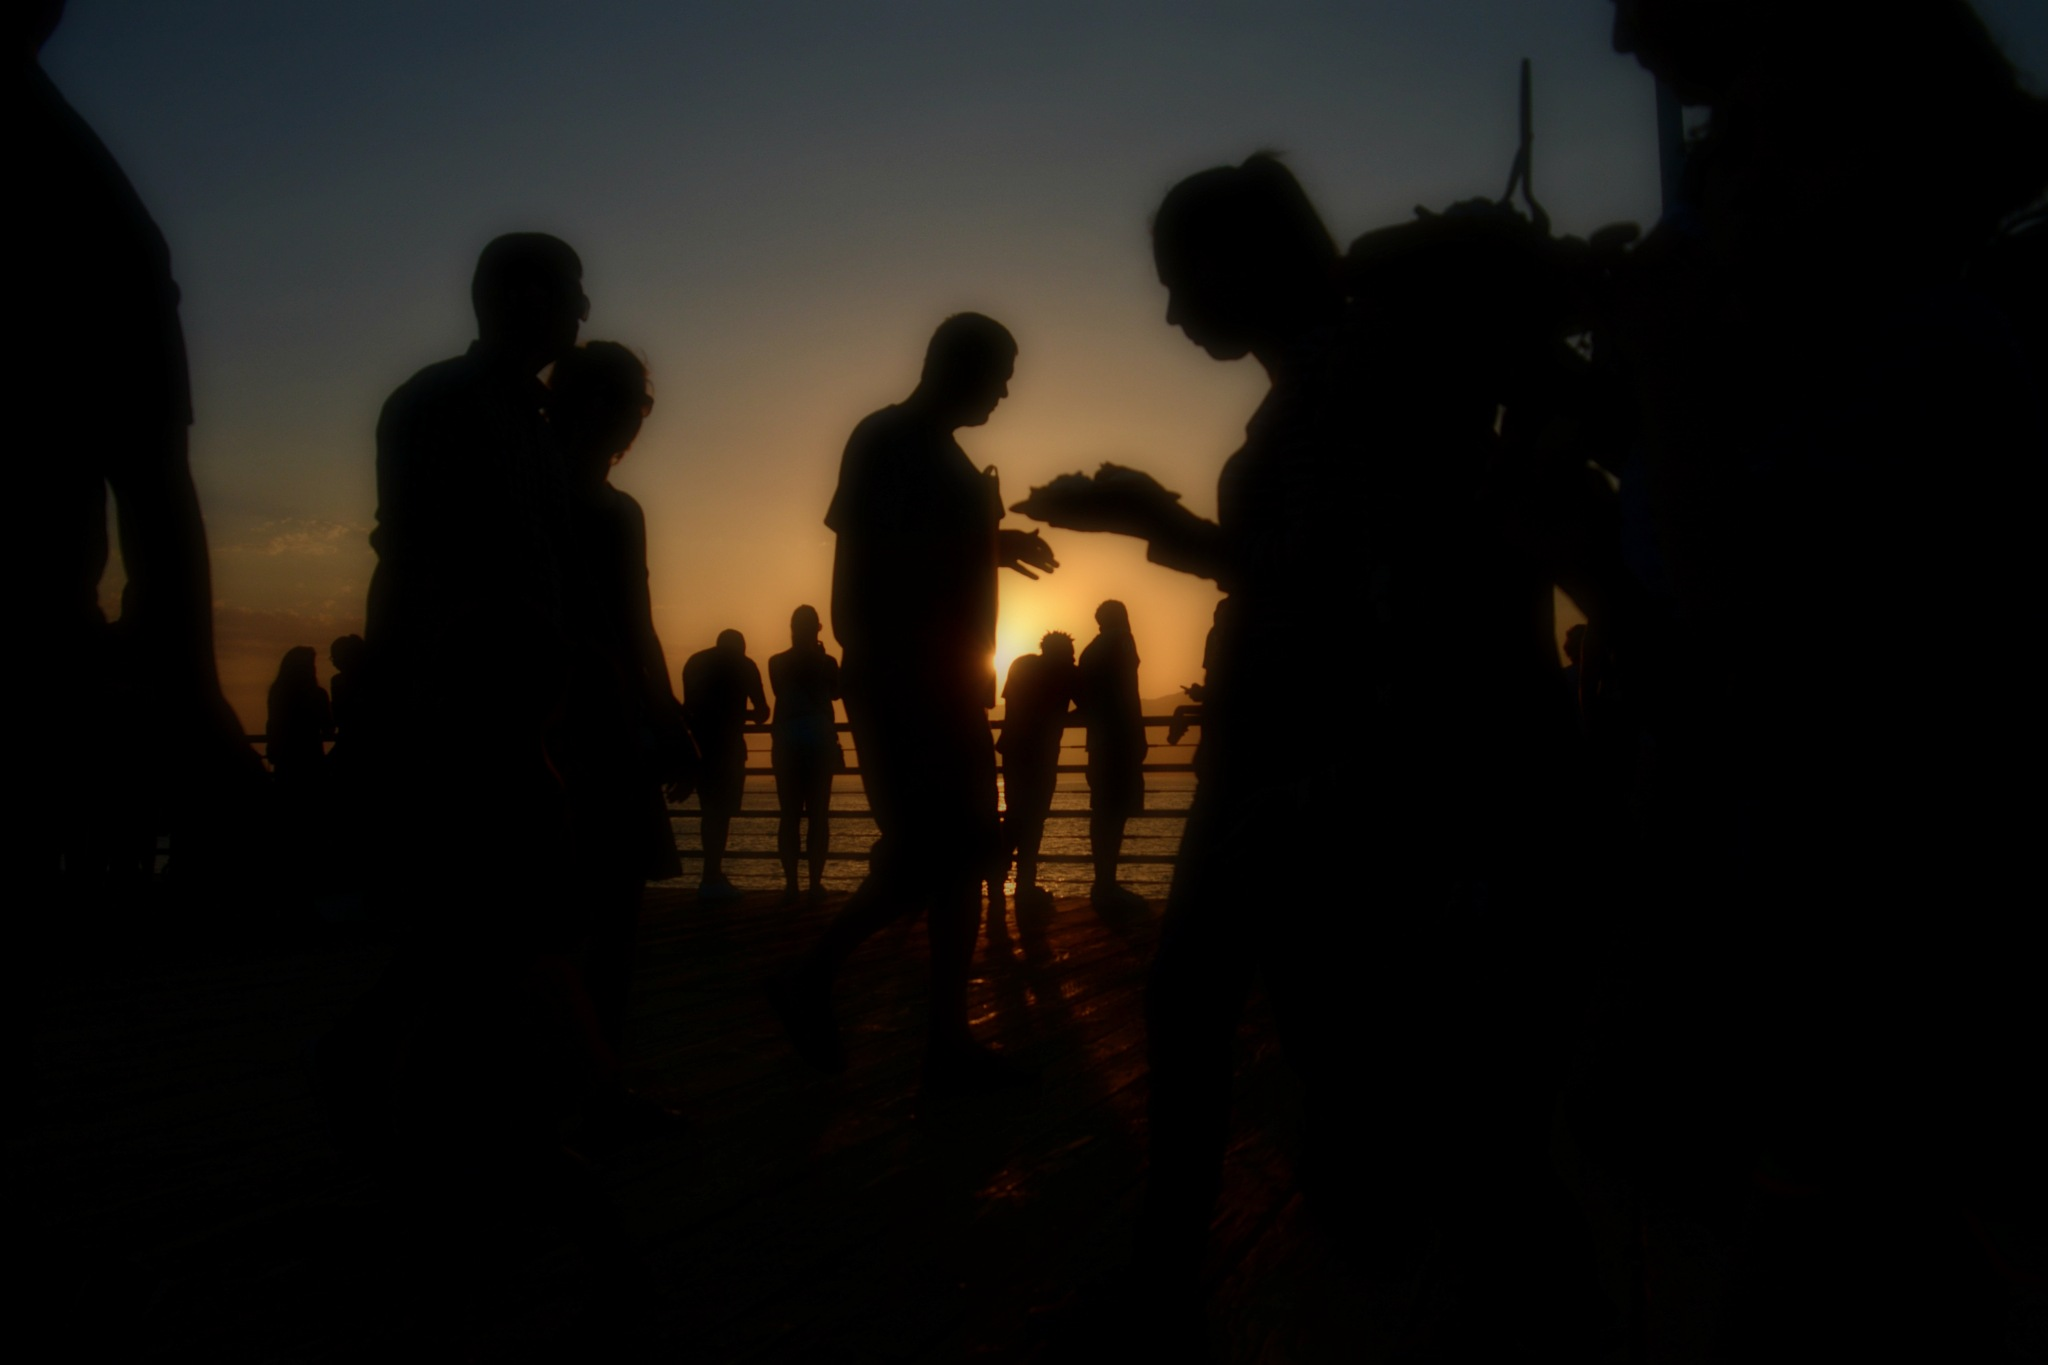 Silhouette & Sunset by Solomon Aseoche